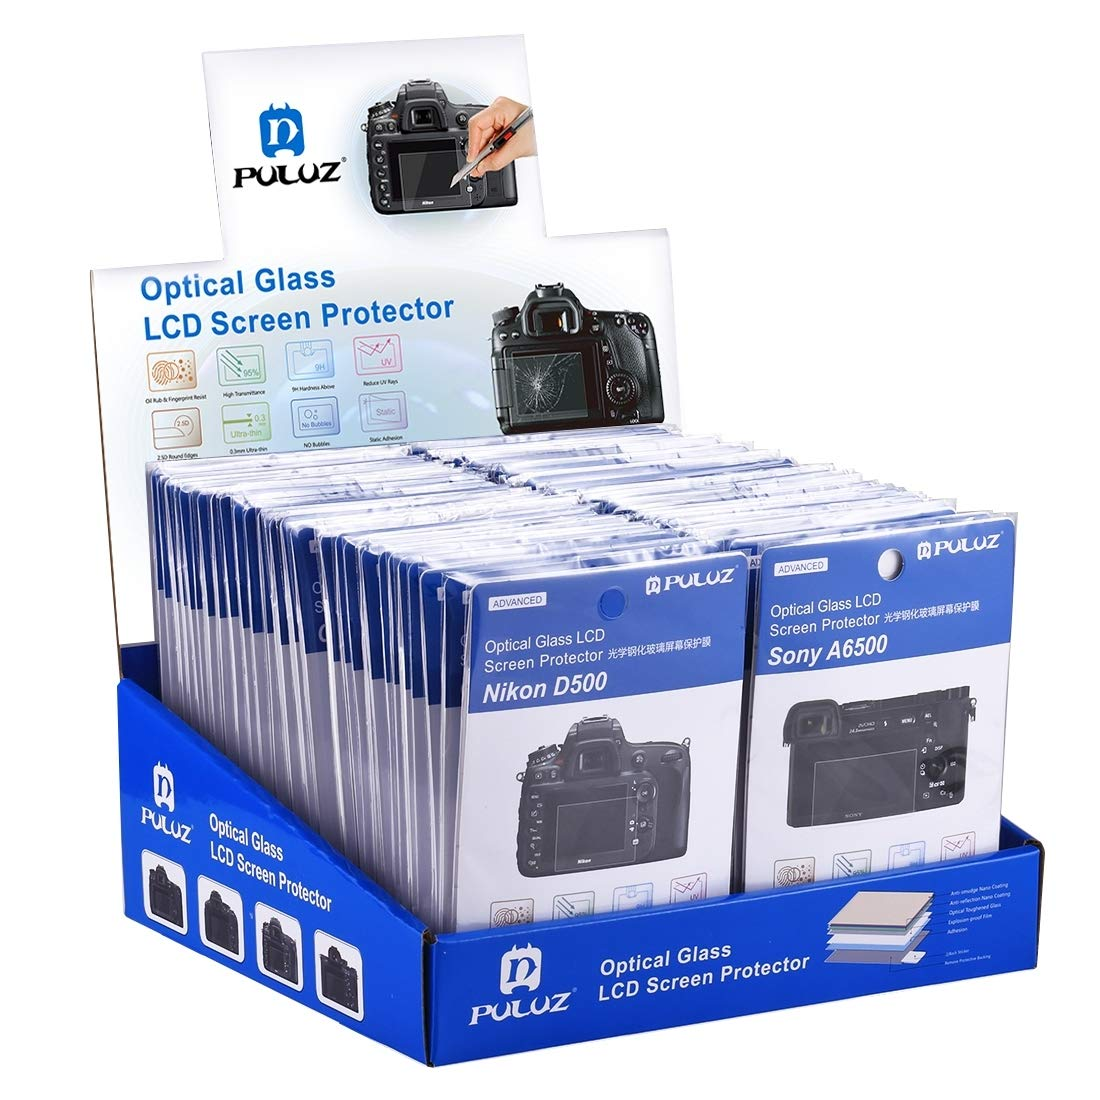 Guangheyuan 60 PCS PULUZ 2.5D Curved Edge 9H Surface Hardness Tempered Glass Screen Protector Kits for Canon 5D Mark IV/Mark III,